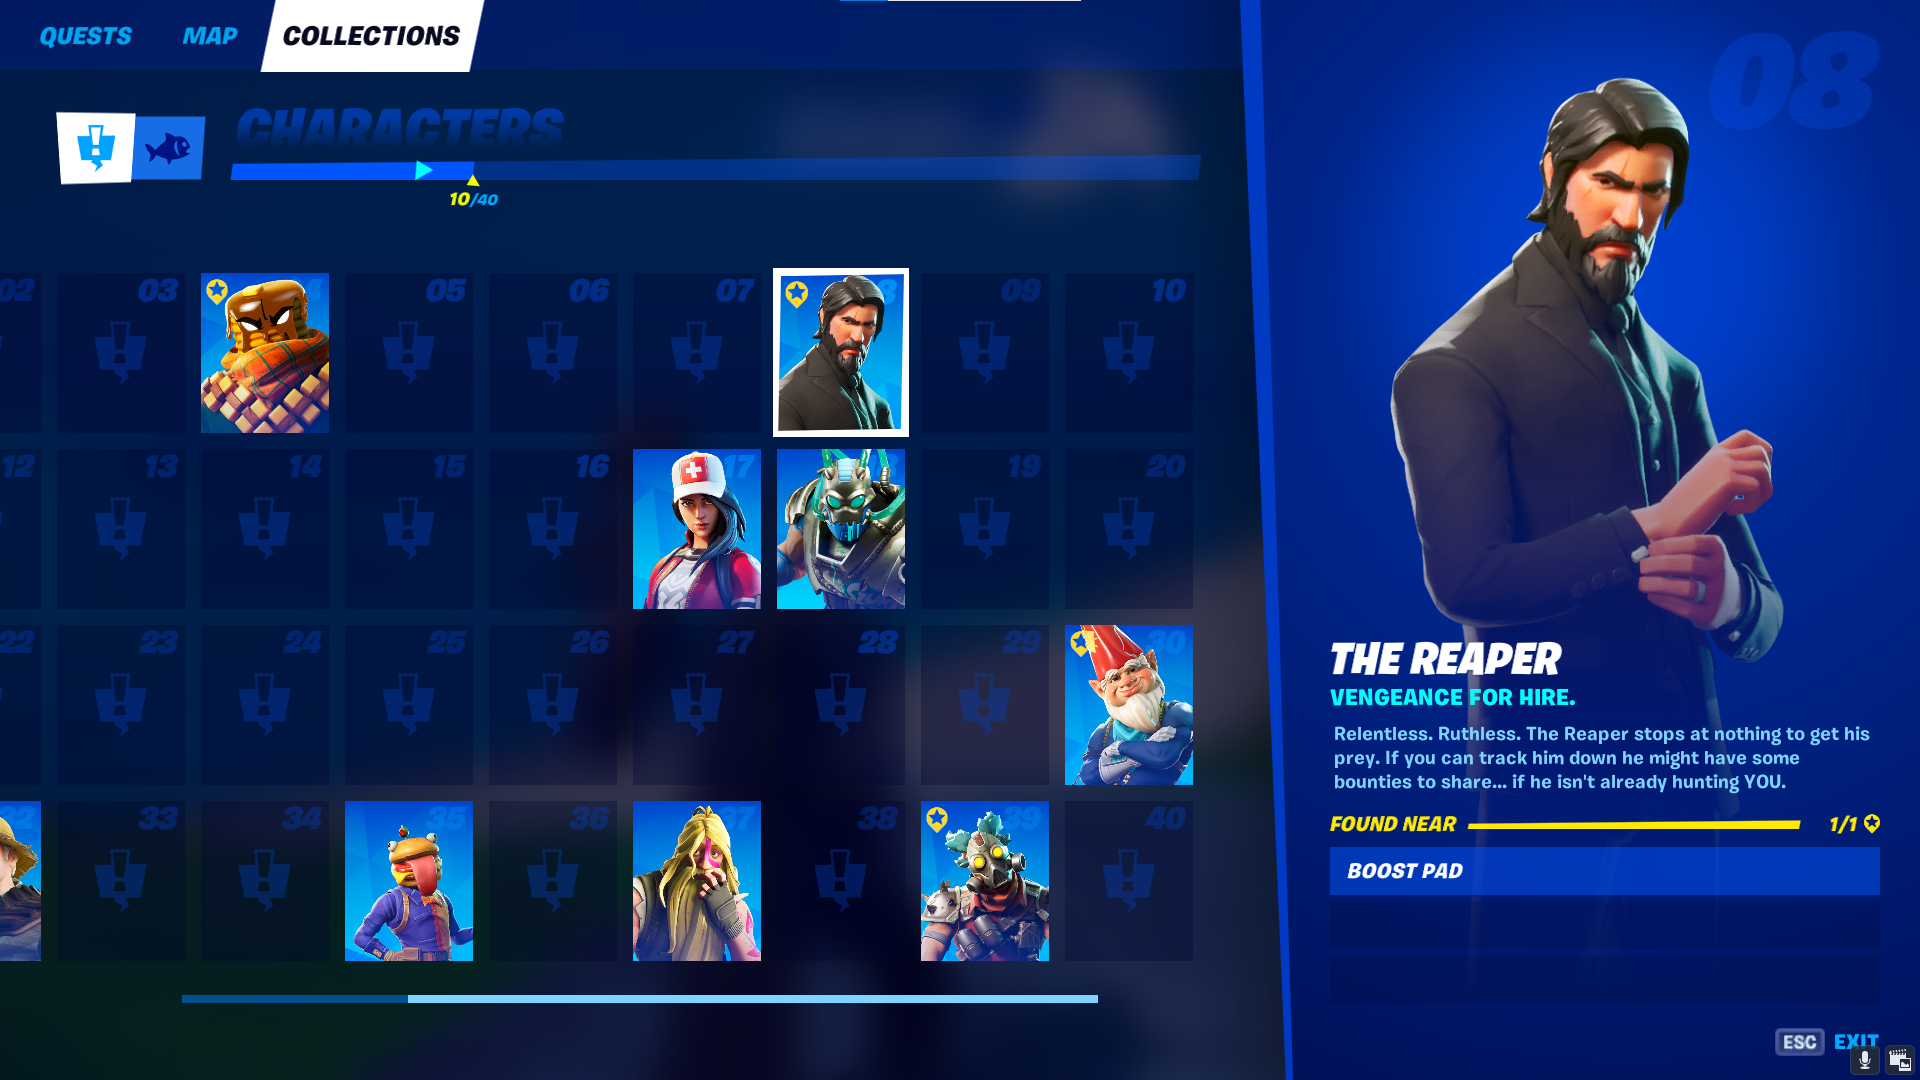 All 41 Character Locations In Collections In Fortnite Chapter 2 Season 5 Dot Esports Fortnite chapter 2 season 5 means a new map, and thanks to hypex we already know what it looks like. in fortnite chapter 2 season 5